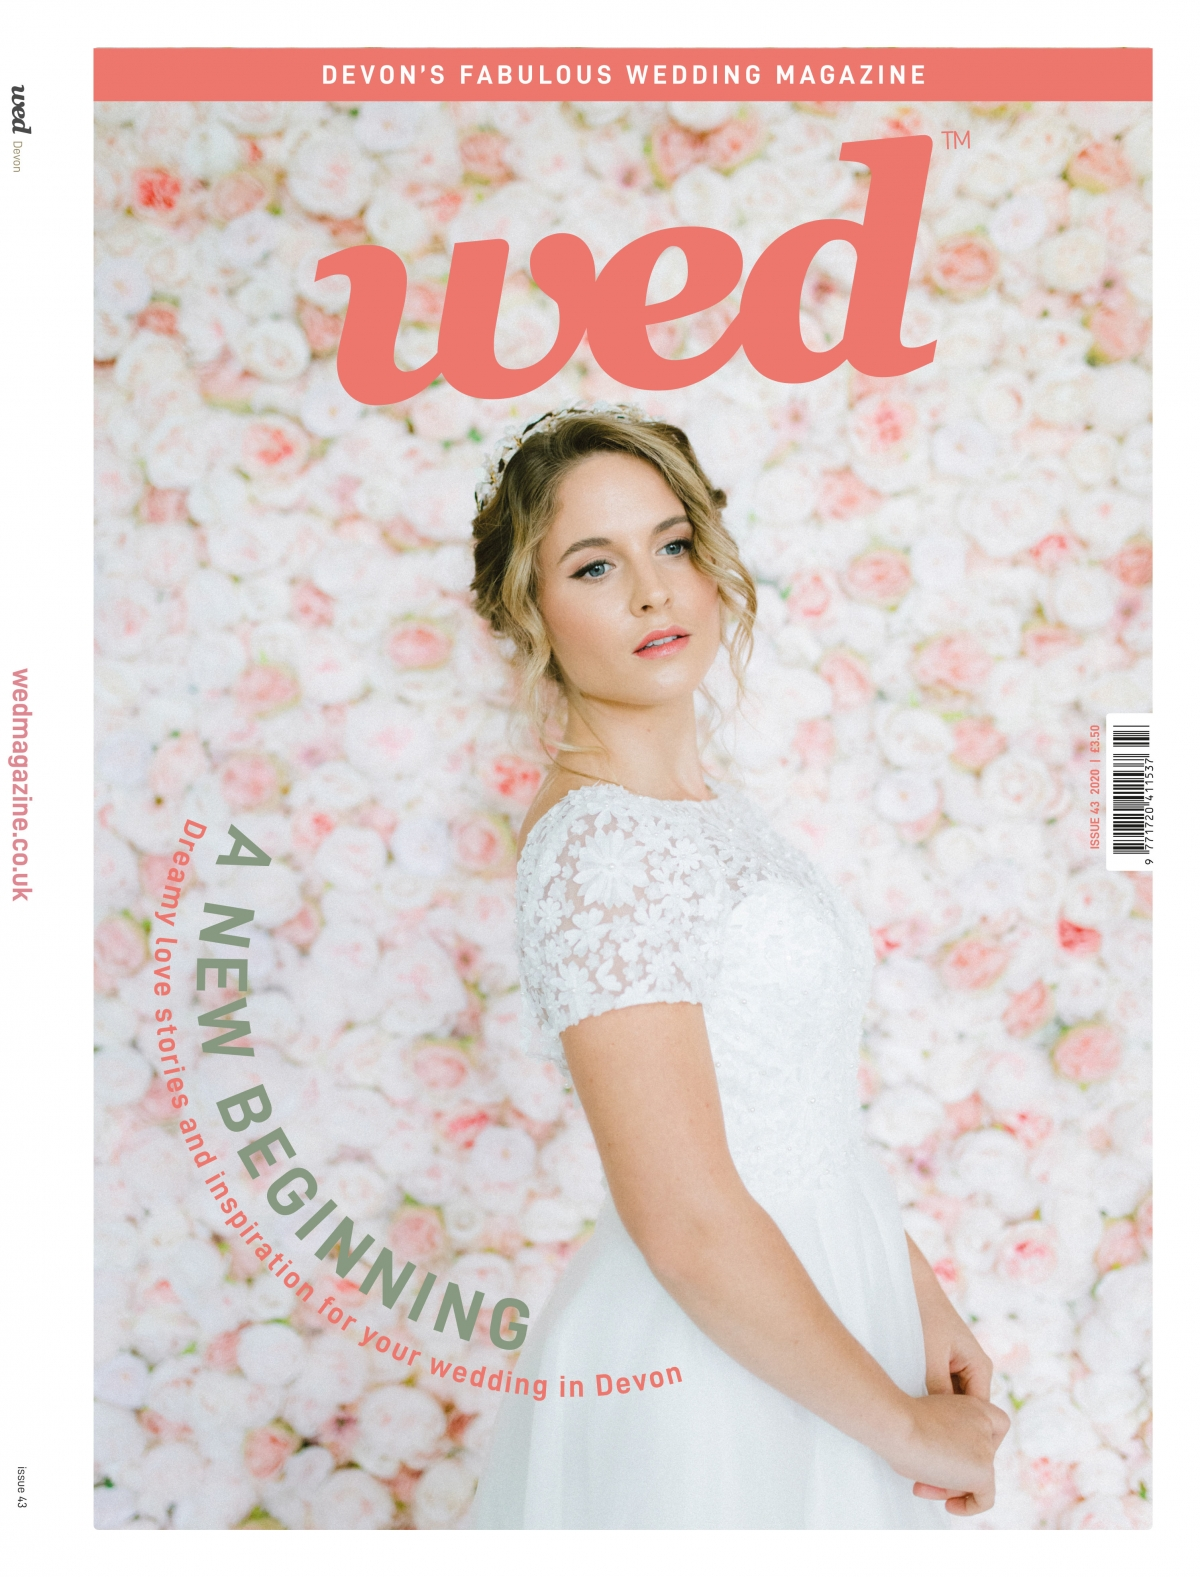 Order a print copy of Devon Wed Magazine - Issue 43